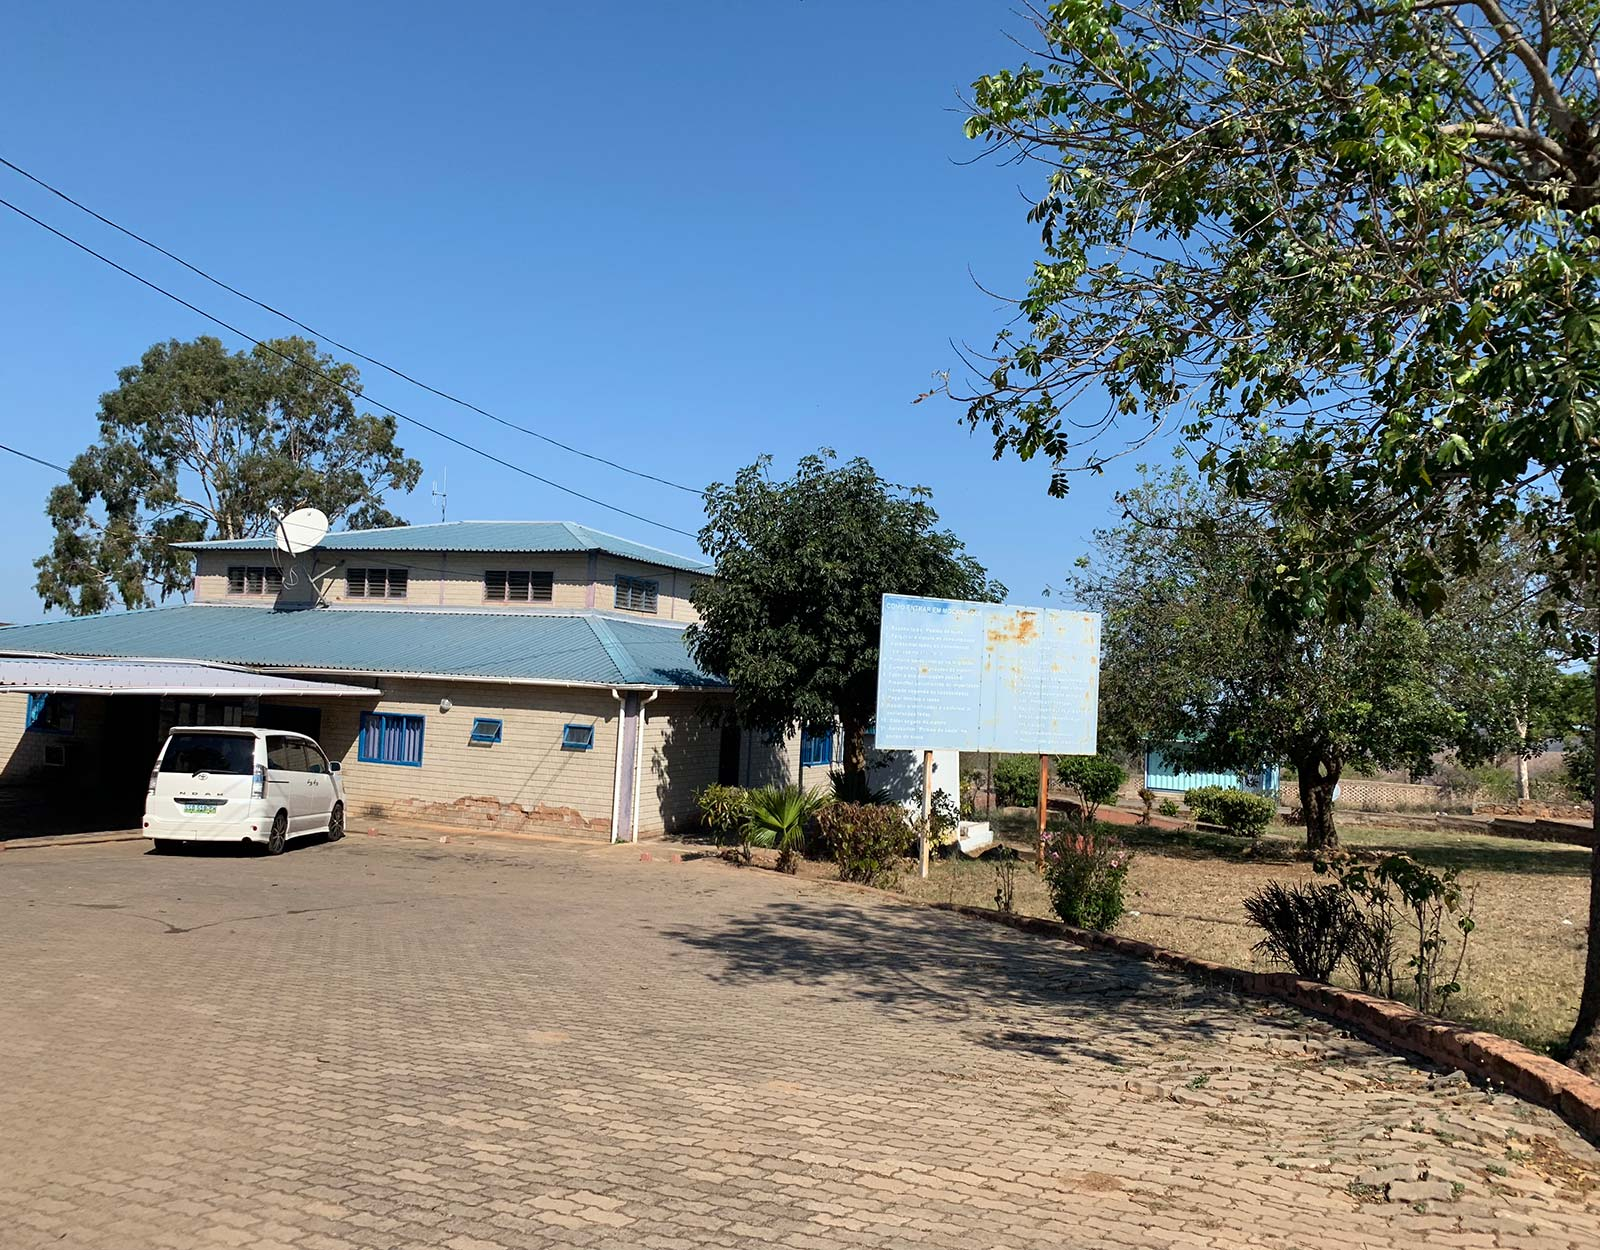 Customs office in Manzini, Eswatini. The £4 bus that cost me £700